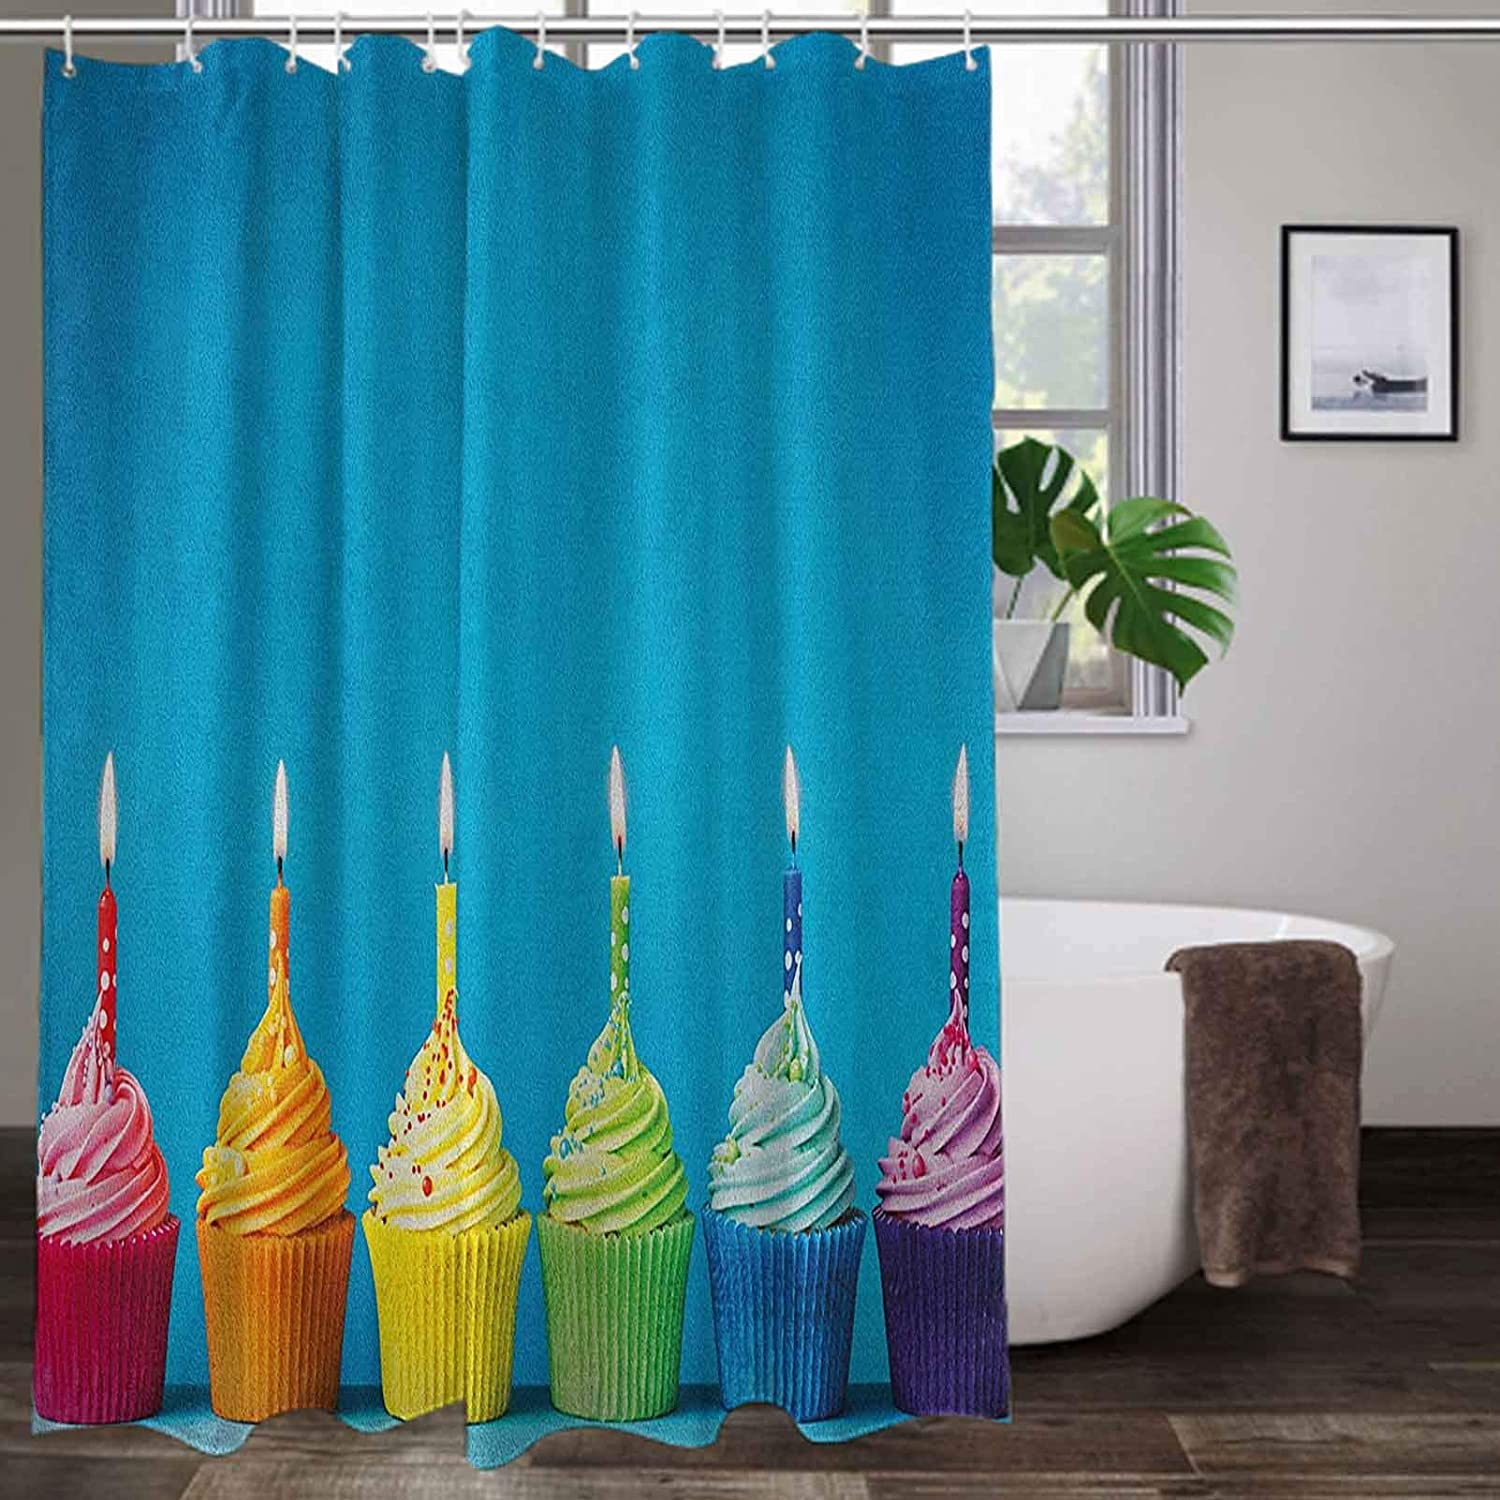 Shower Curtain Liner 72 x 84 Inch, Birthday Bathroom Decor Curtain - Cupcakes in Rainbow Colors with Candles Fun Homemade Party Food Sweet Delicious, Multicolor